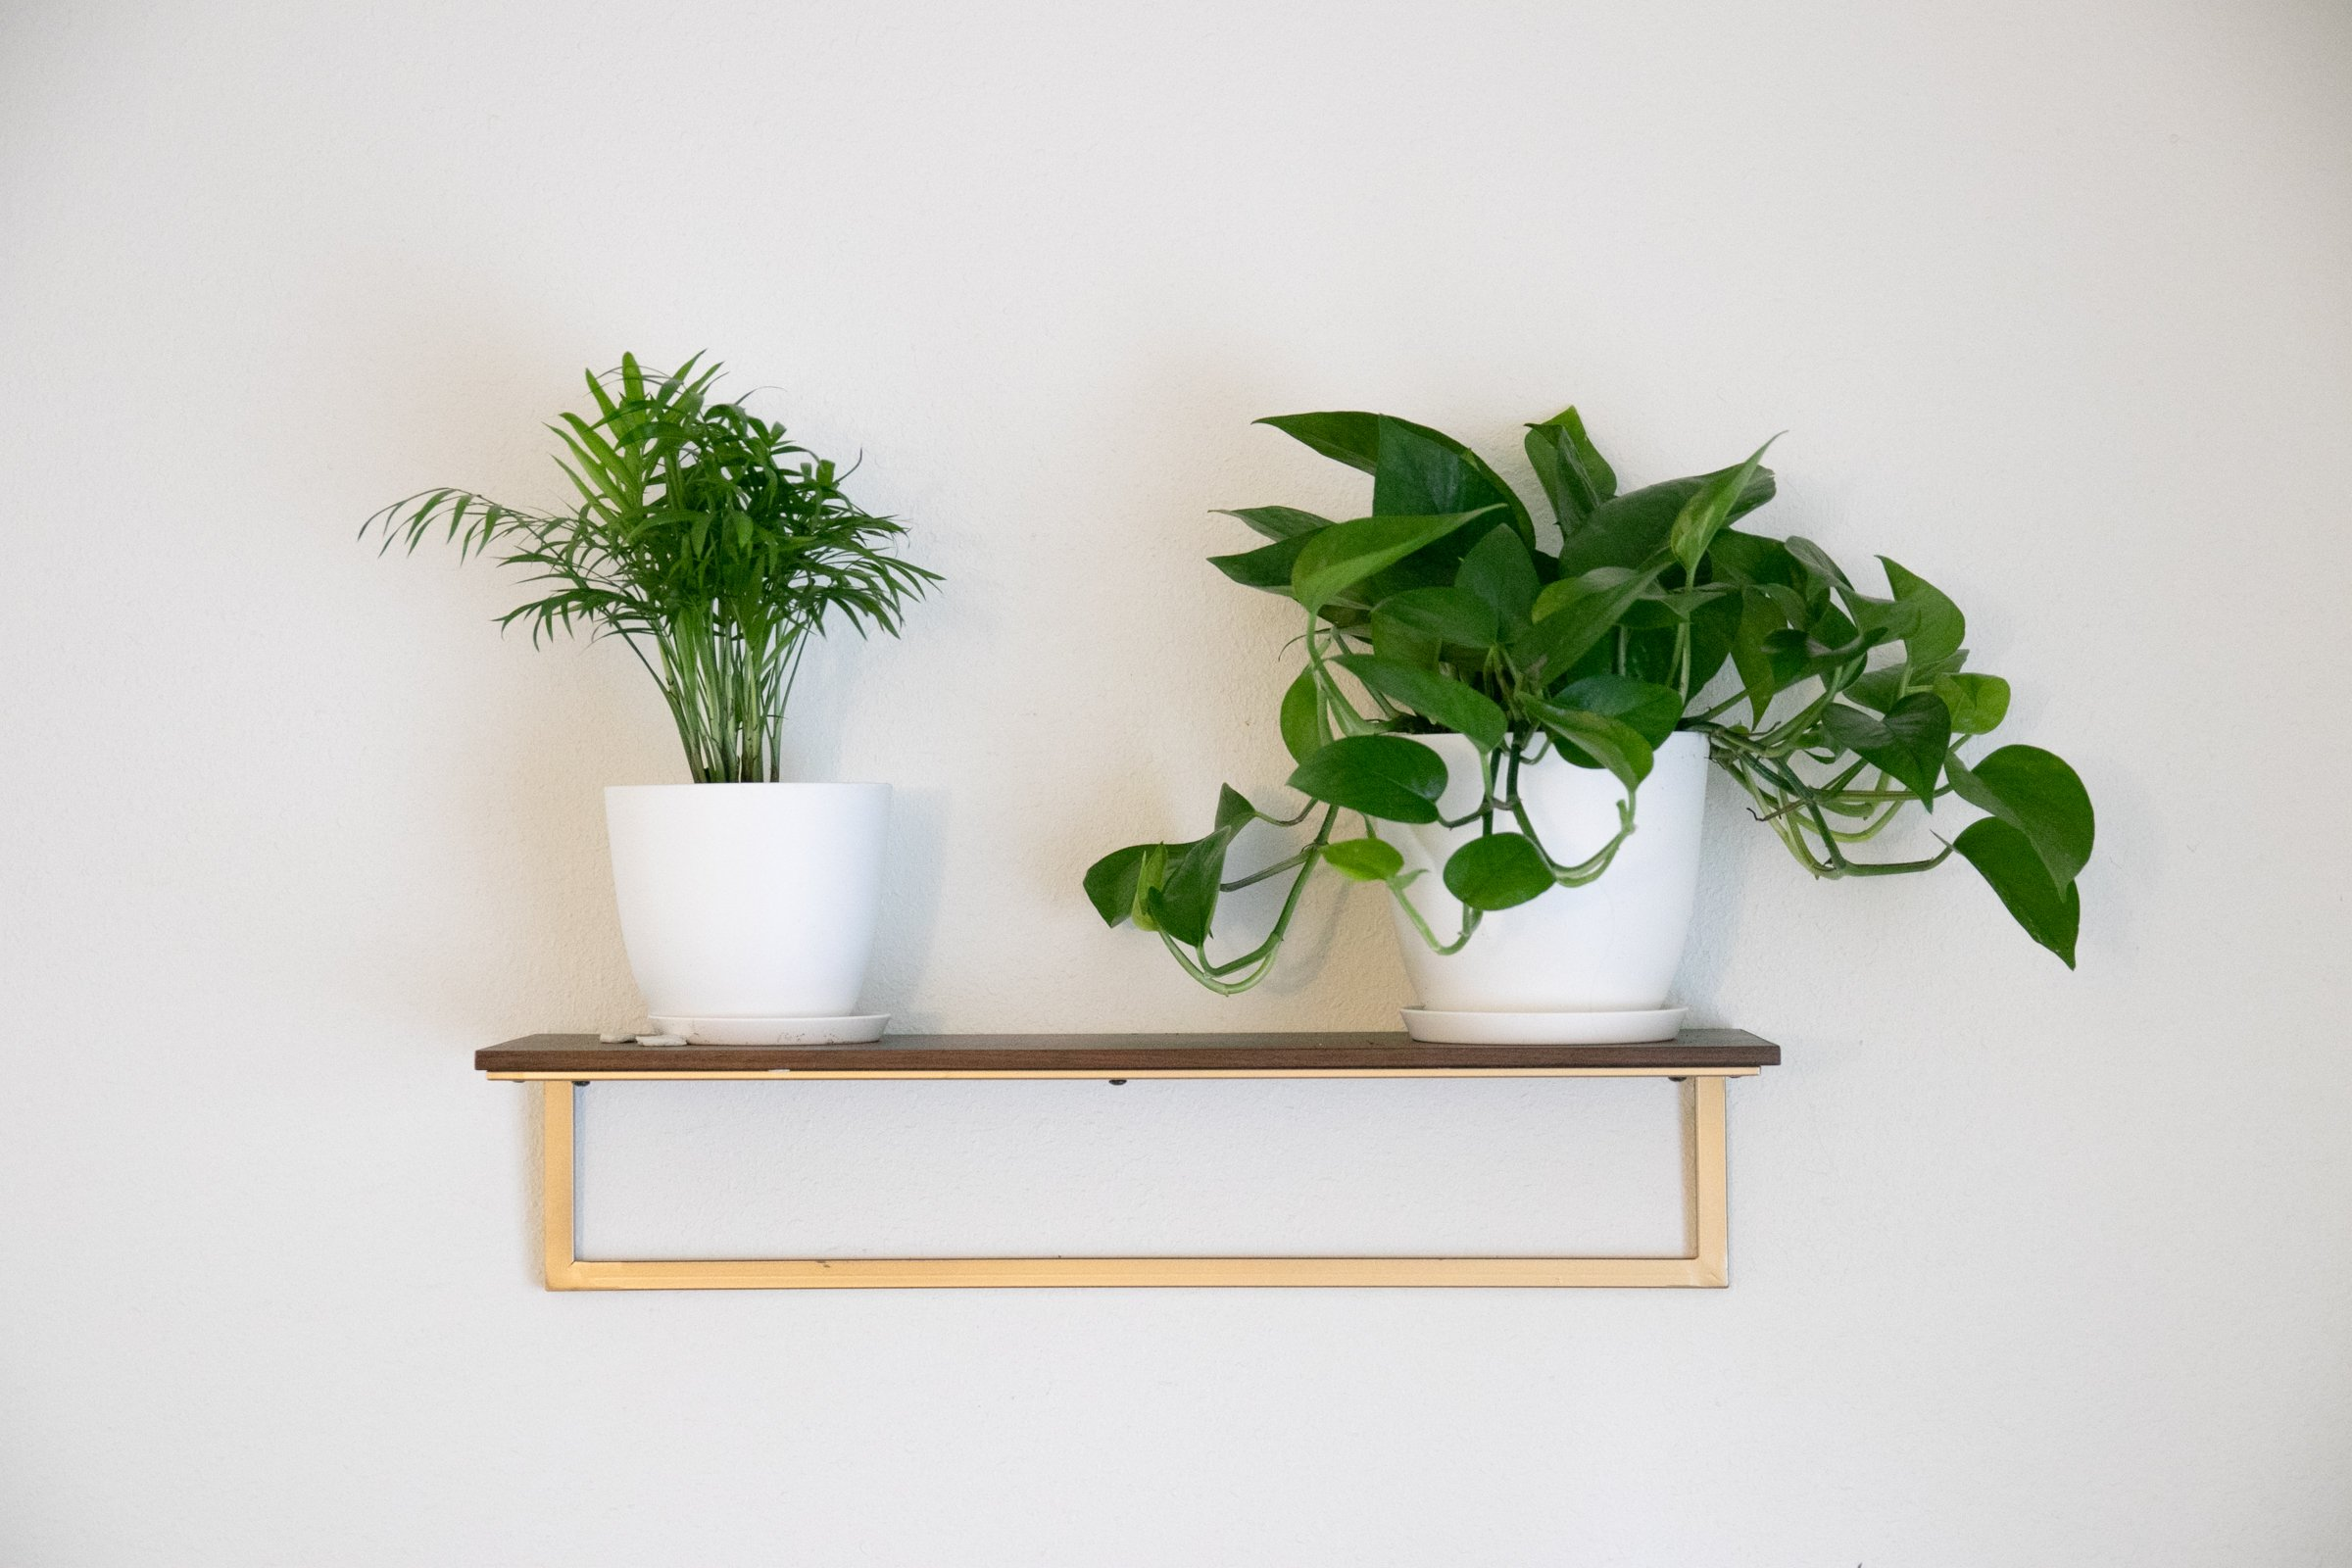 Two Potted Plants On Shelf